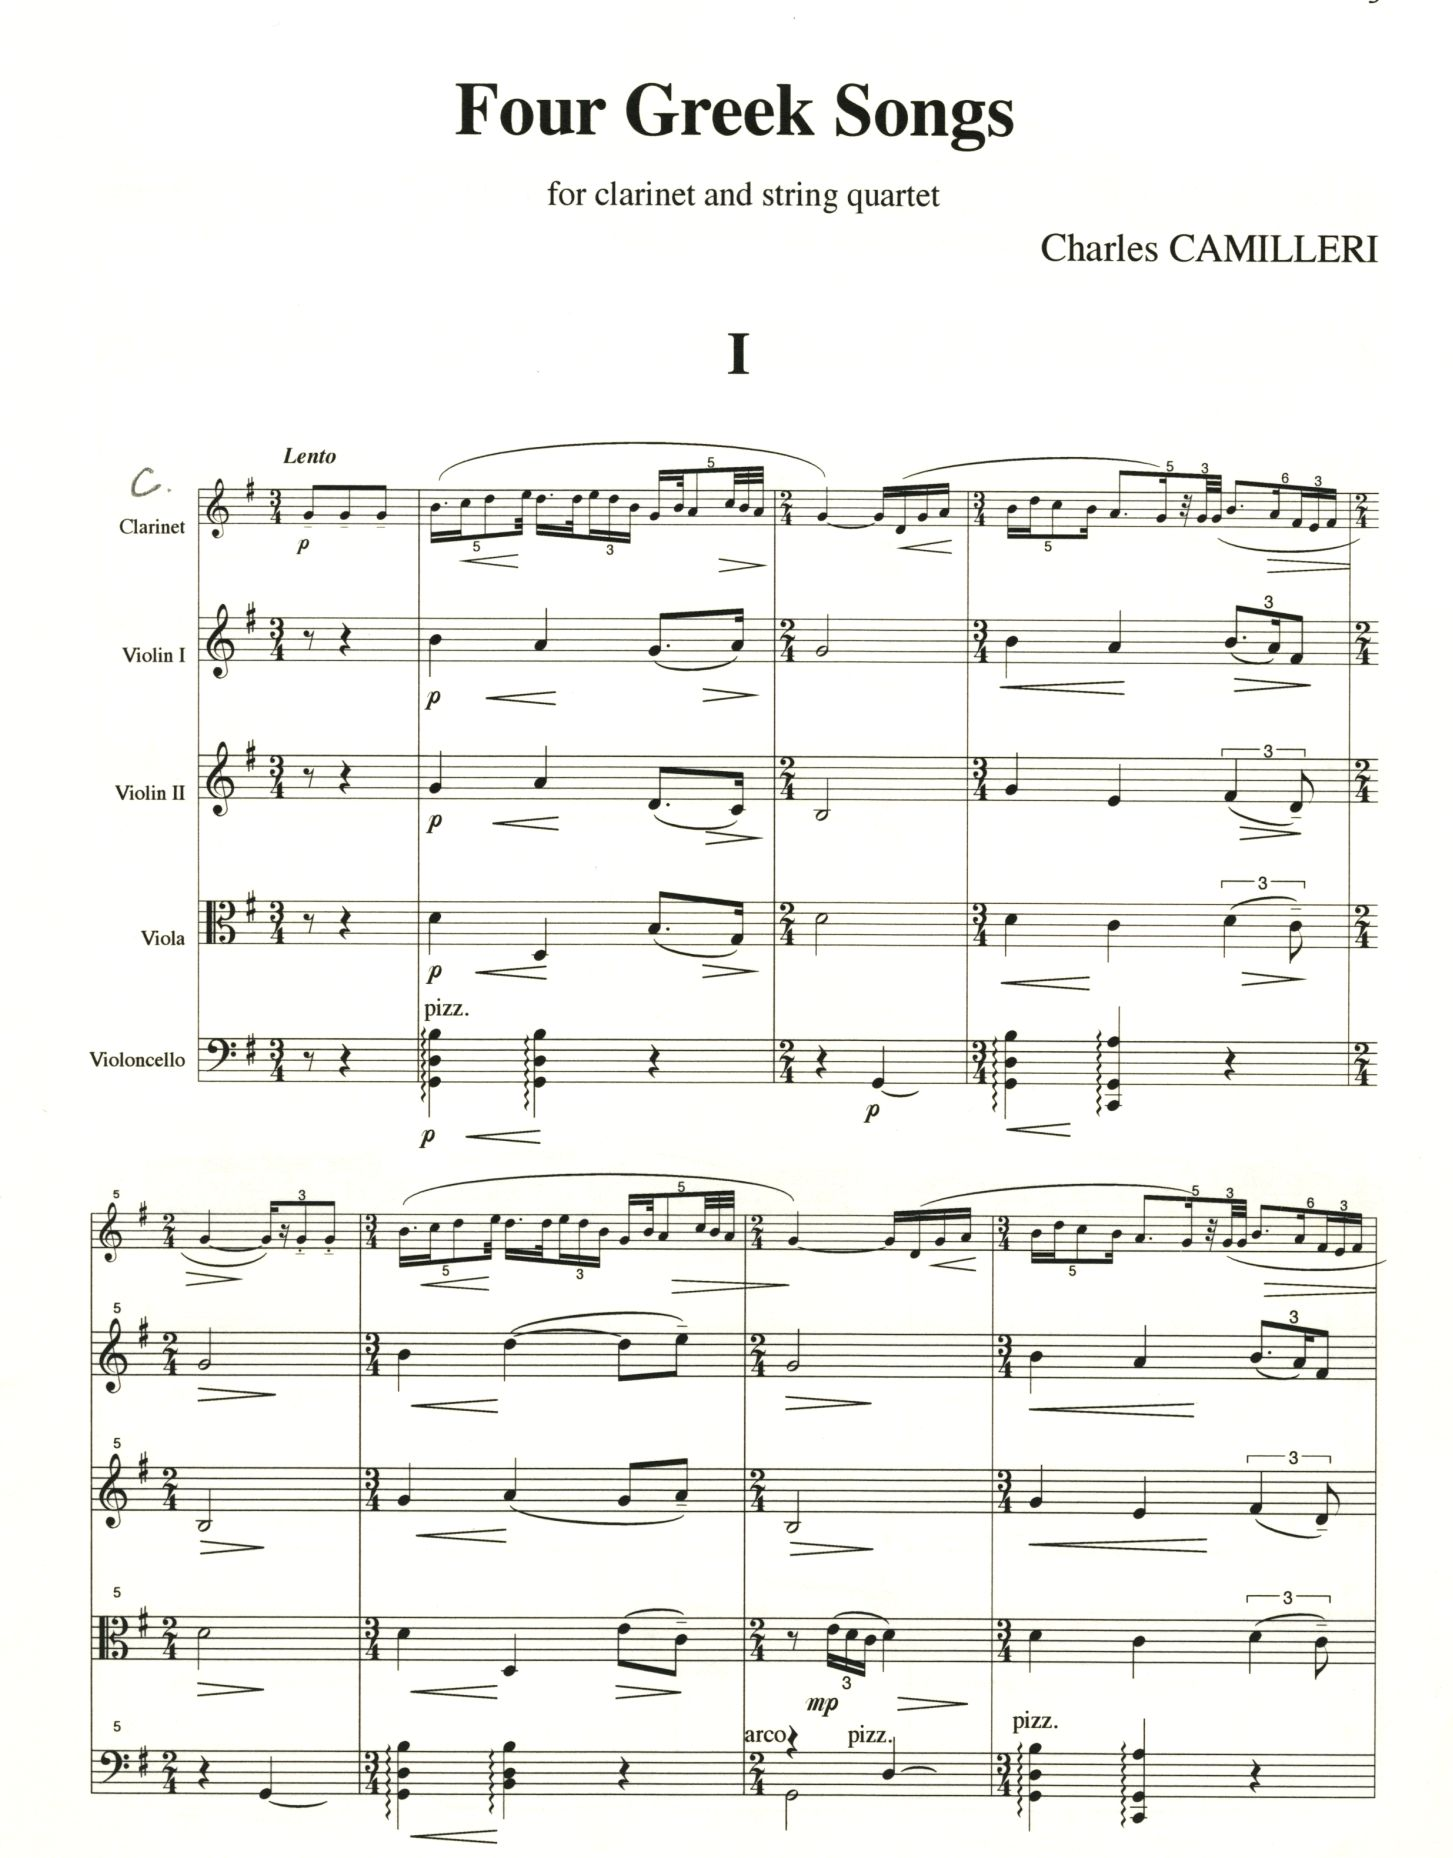 Camilleri Four Greek Songs | The Clarinet Quintet